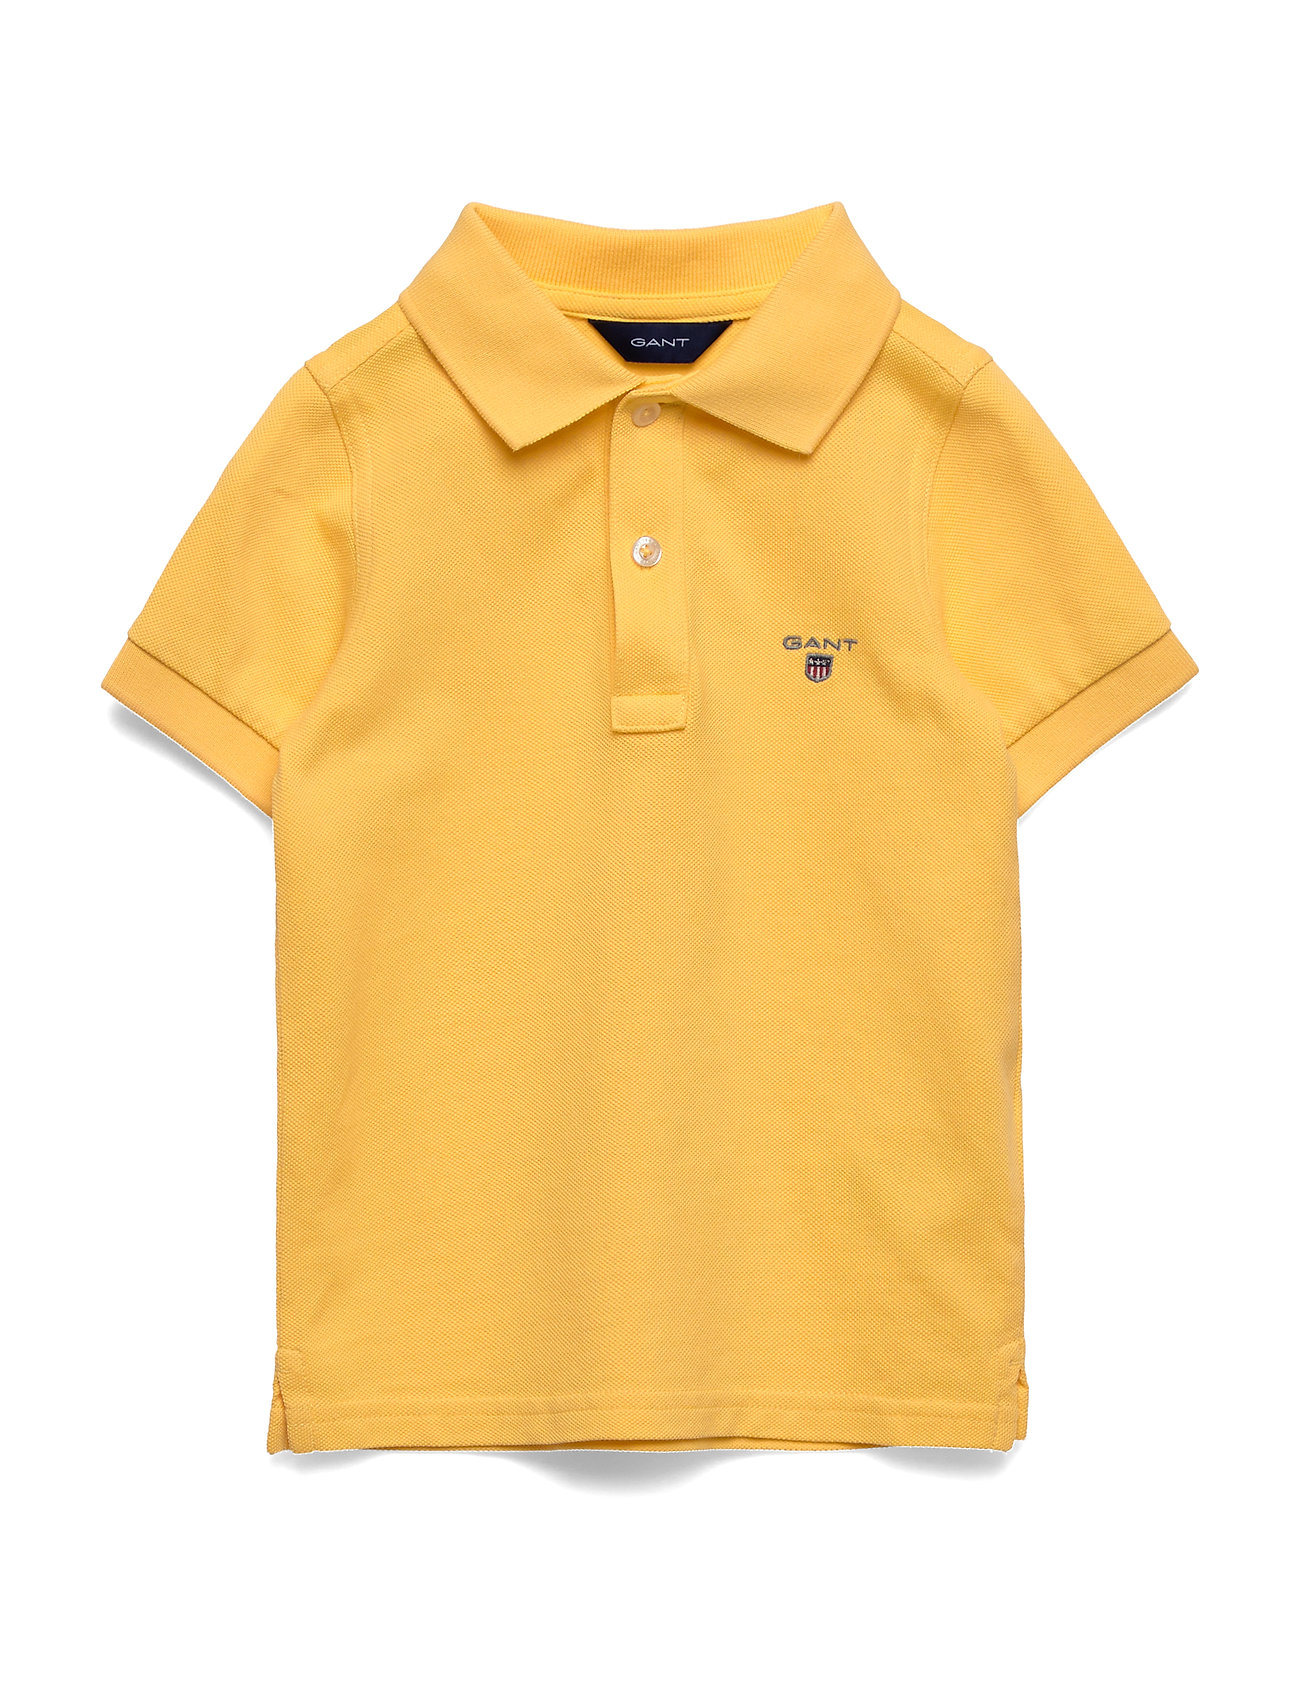 Gant THE ORIGINAL PIQUE SS - MIMOSA YELLOW